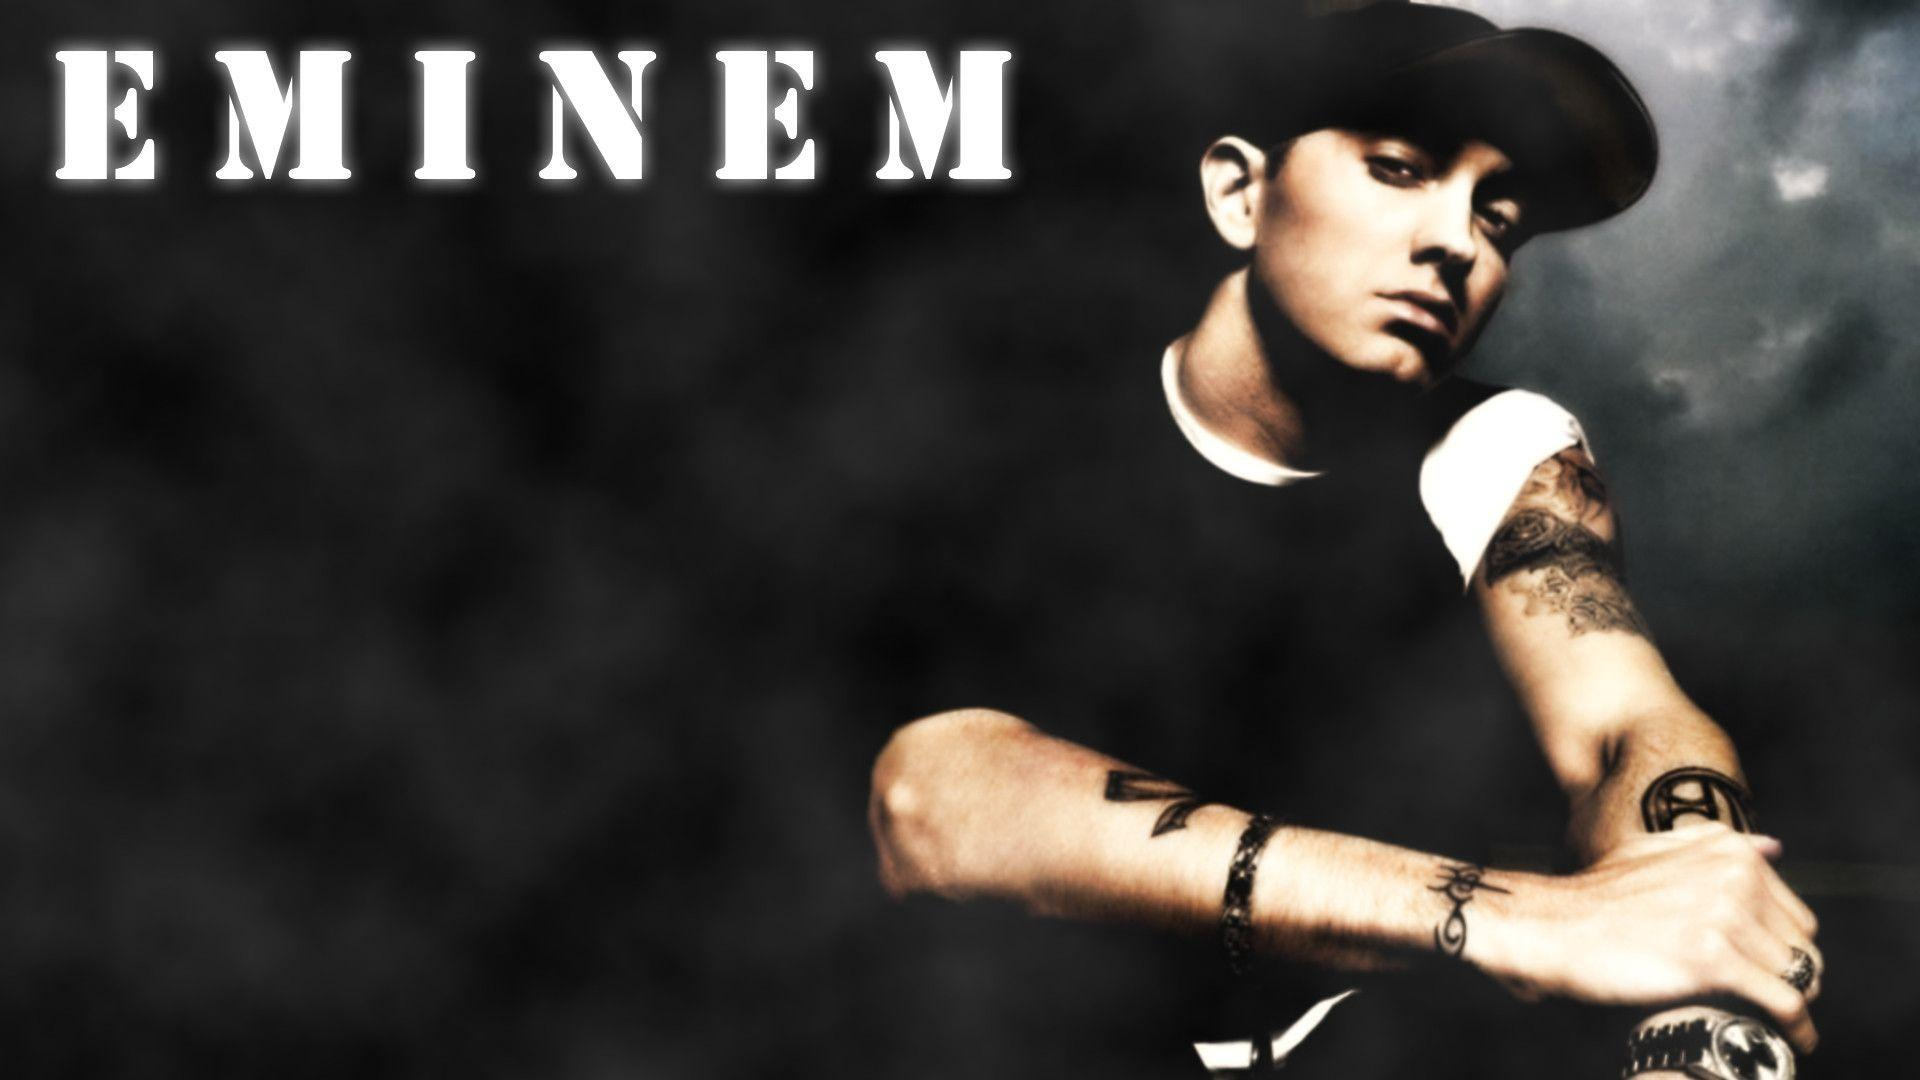 Eminem Wallpapers (Wallpaper 1-24 of 122)